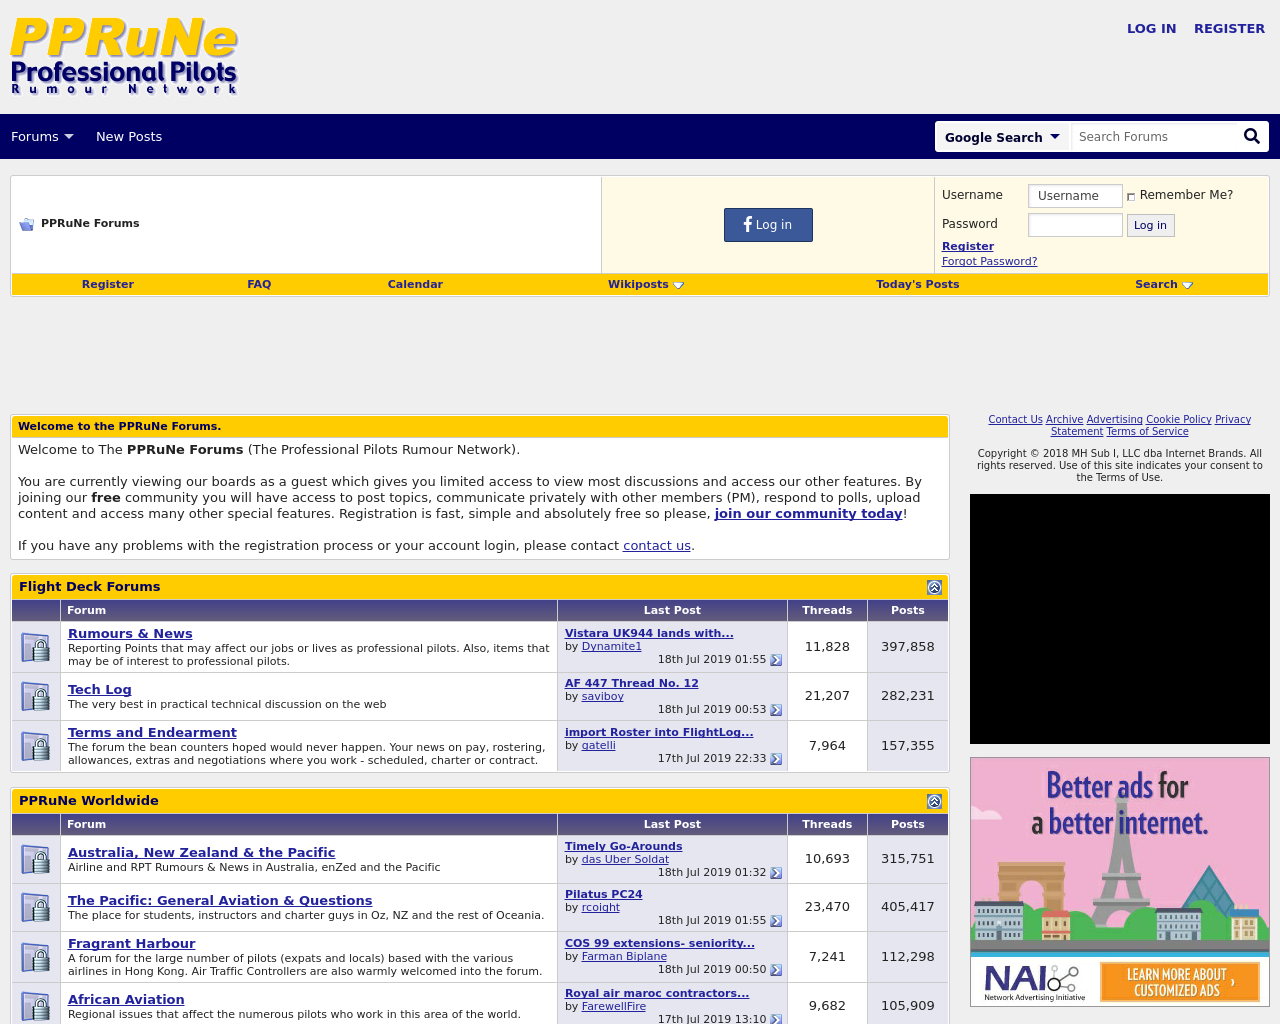 PPRuNe Advertising Mediakits, Reviews, Pricing, Traffic, Rate Card Cost